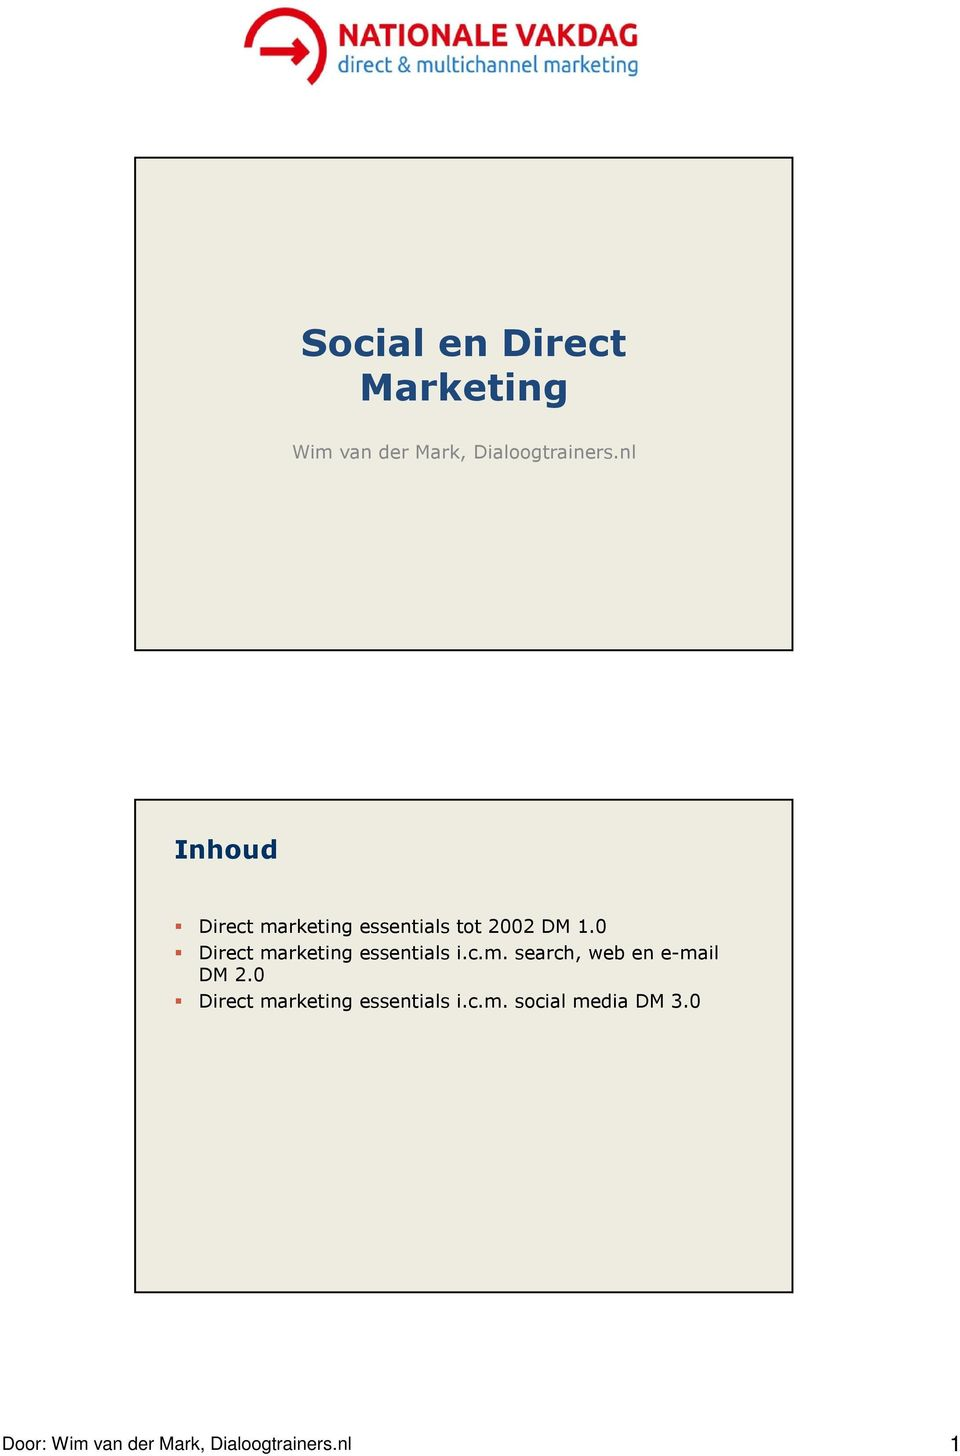 0 Direct marketing essentials i.c.m. search, web en e-mail DM 2.